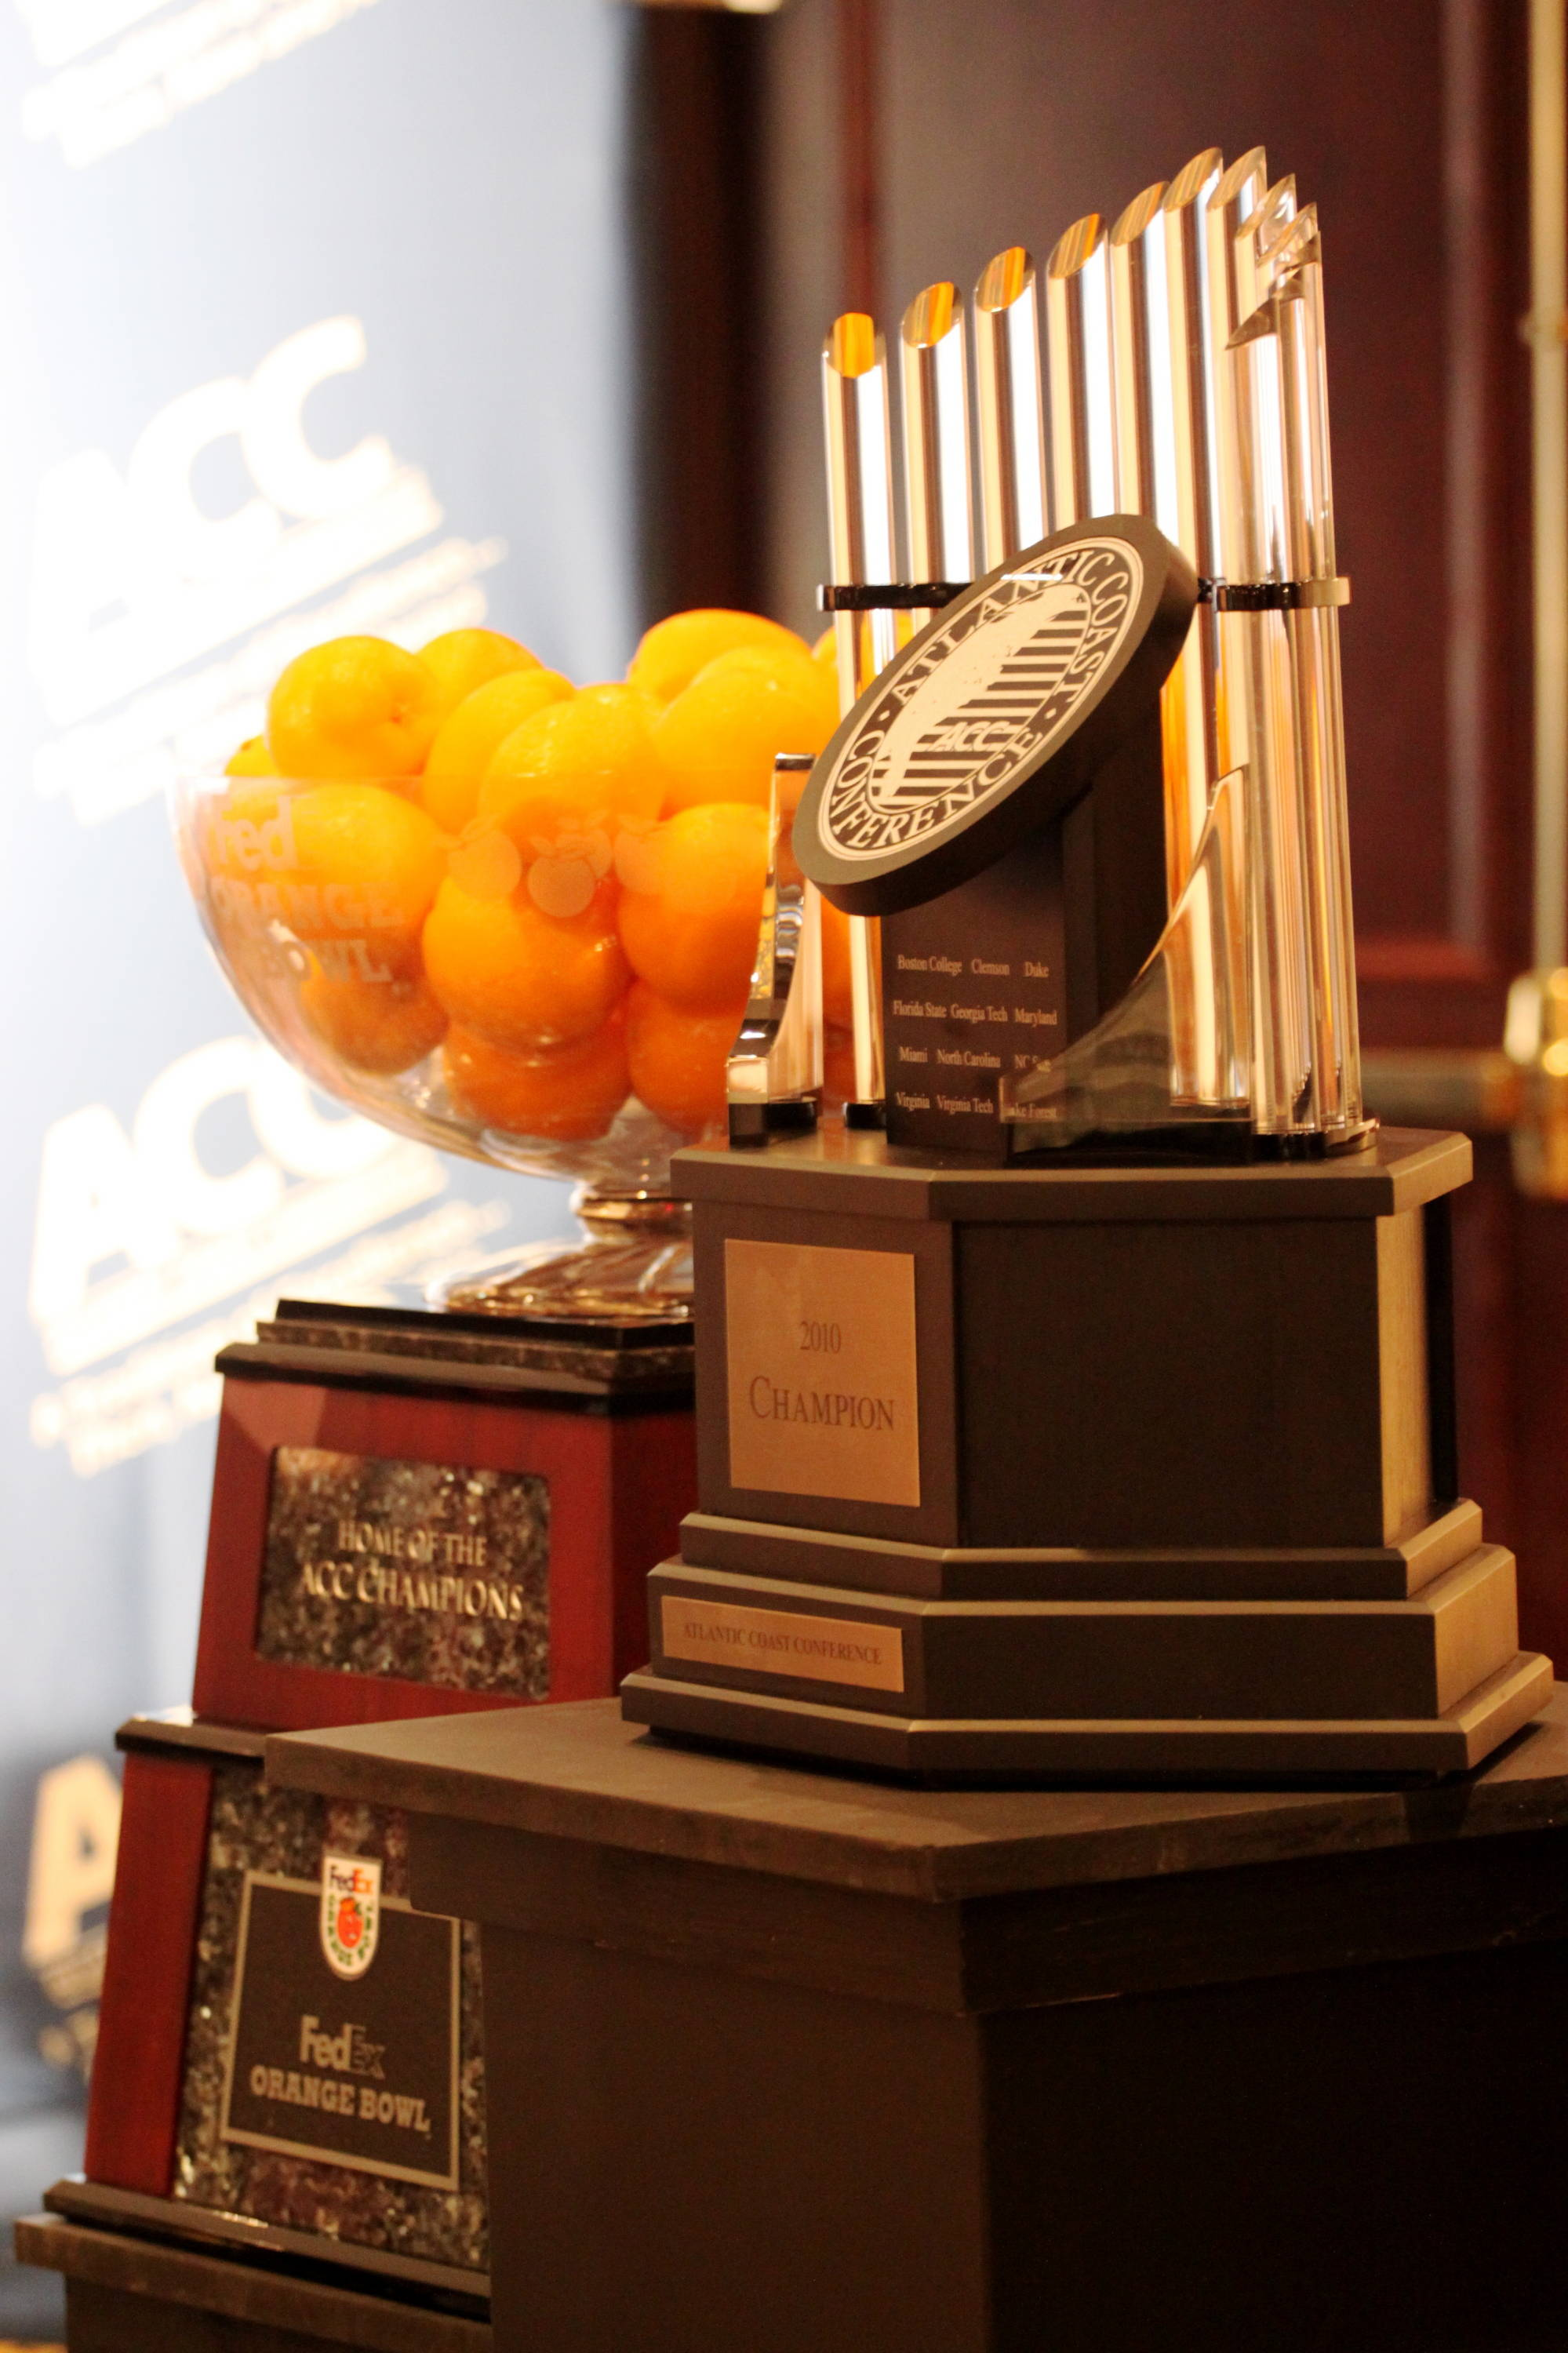 The ACC and Orange Bowl trophies.